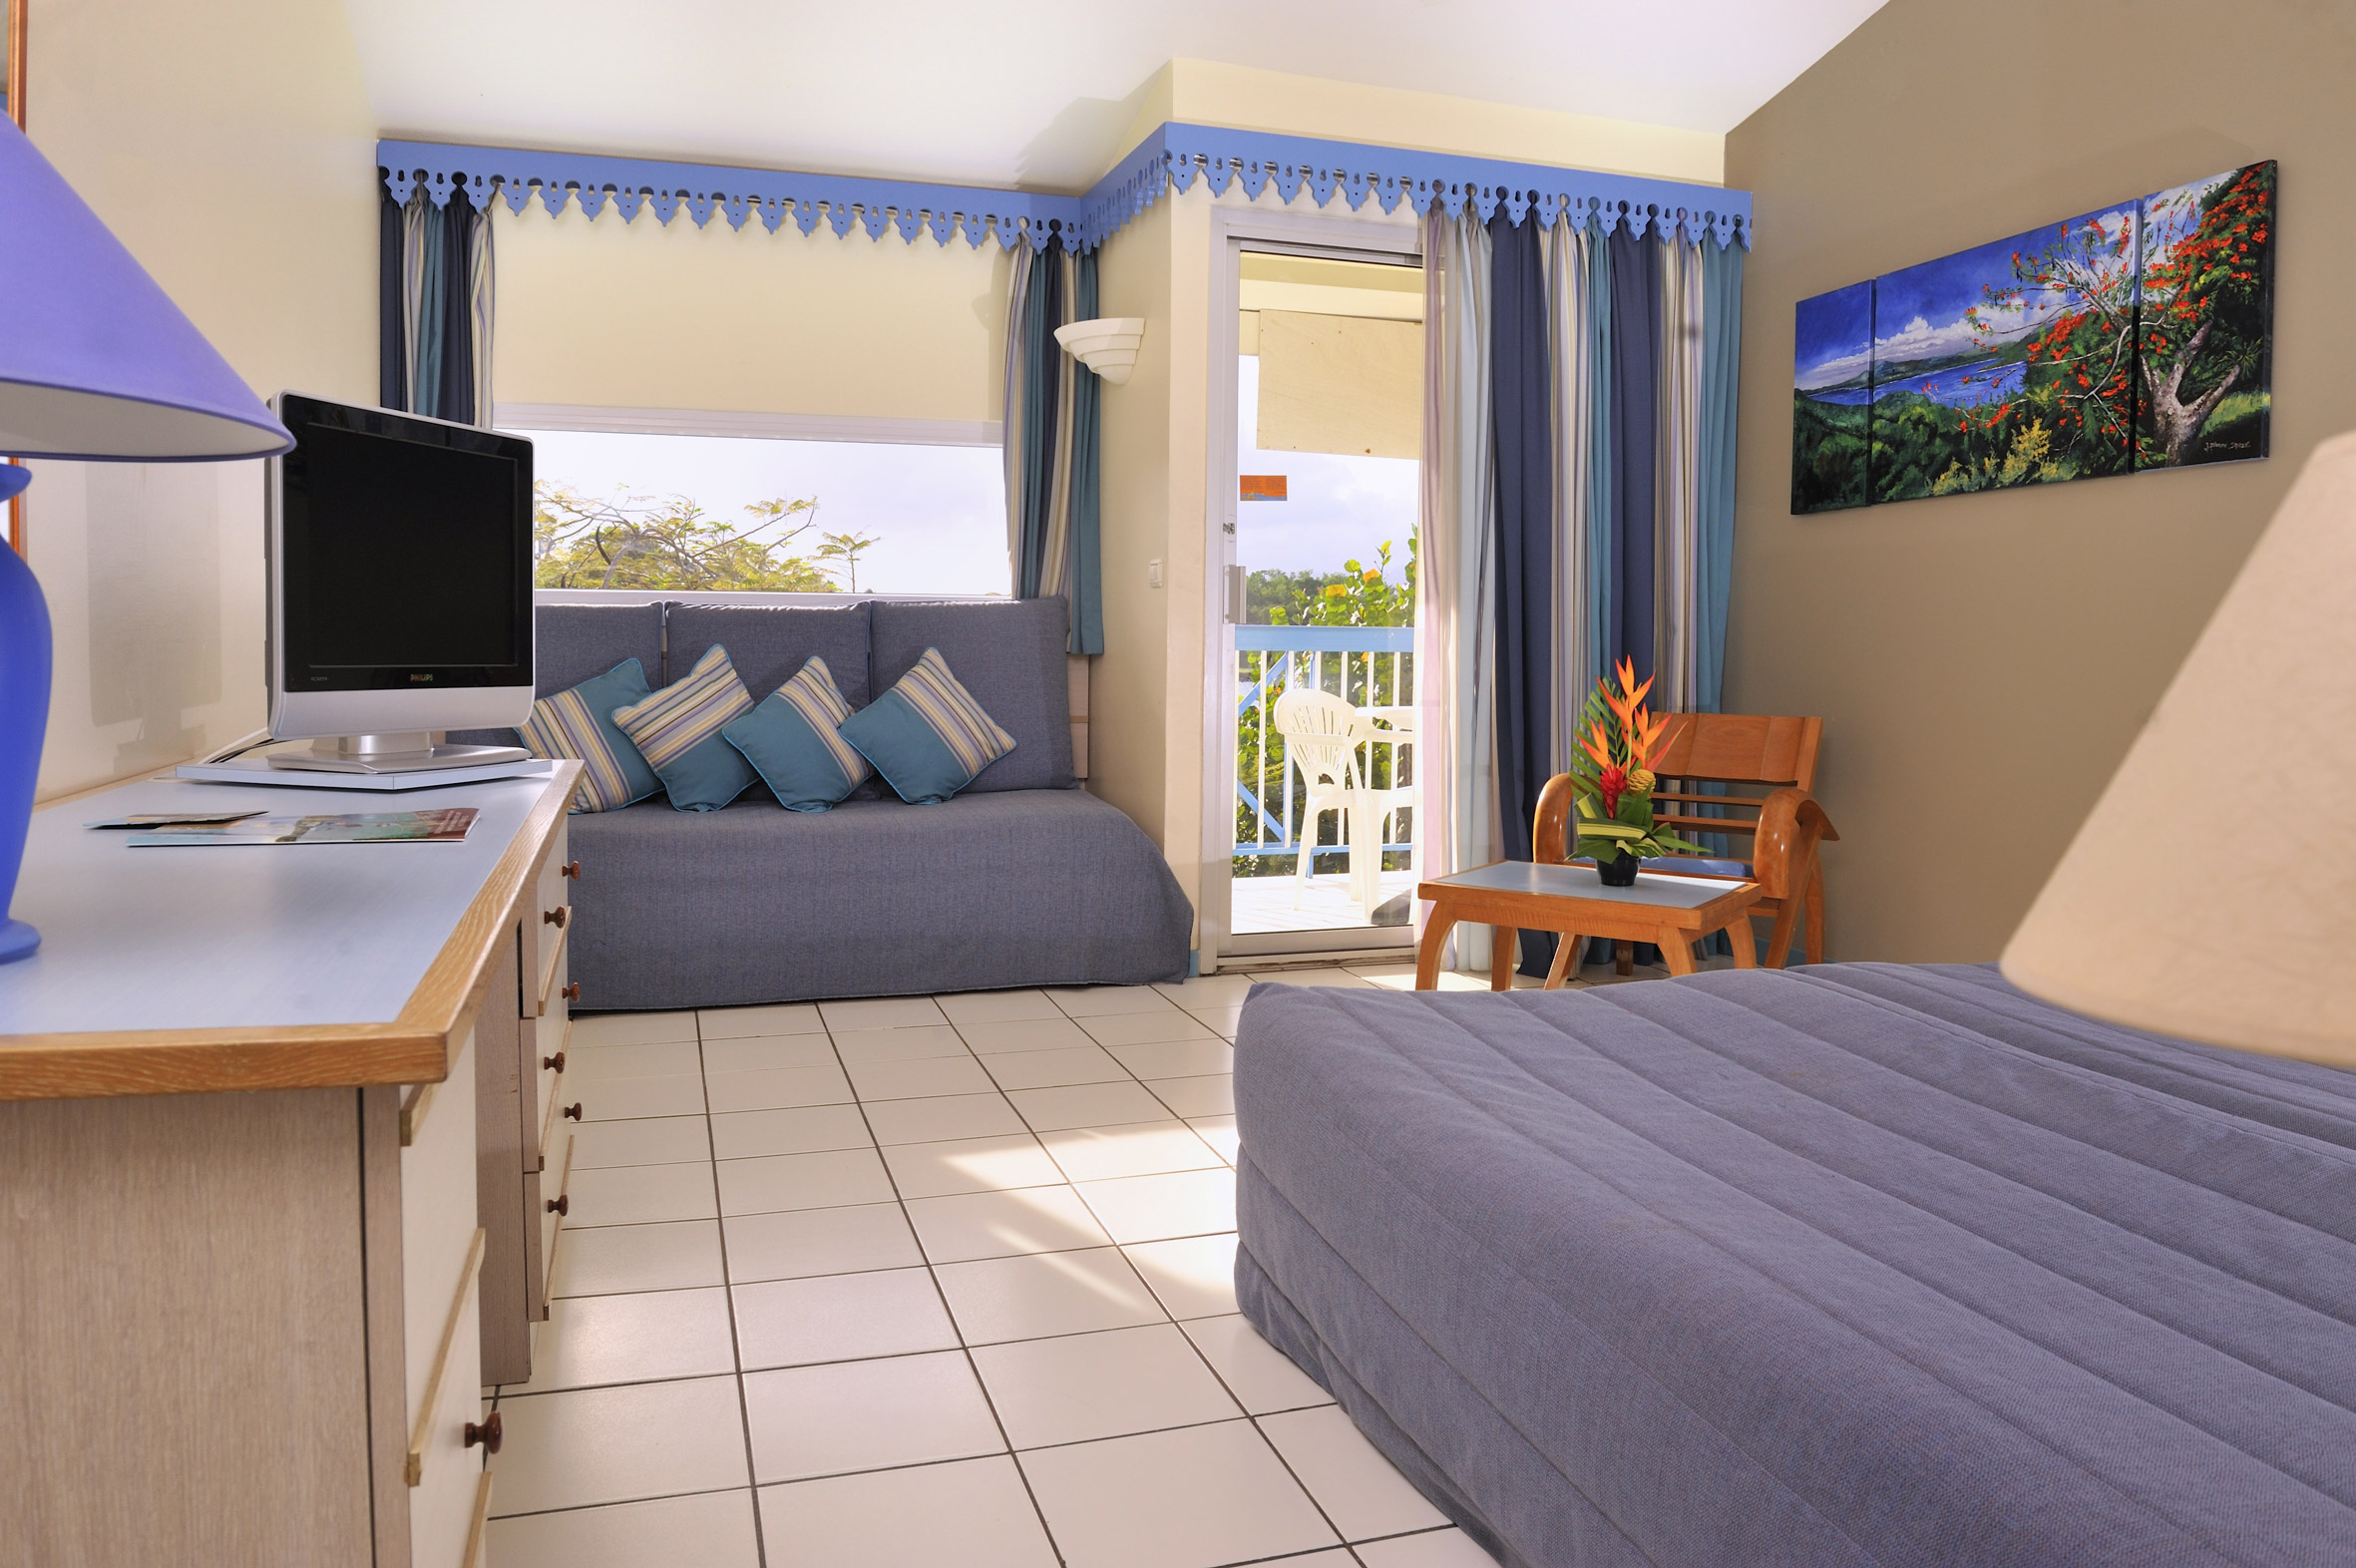 Carayou hotel and spa martinique transat for Hotels 3 ilets